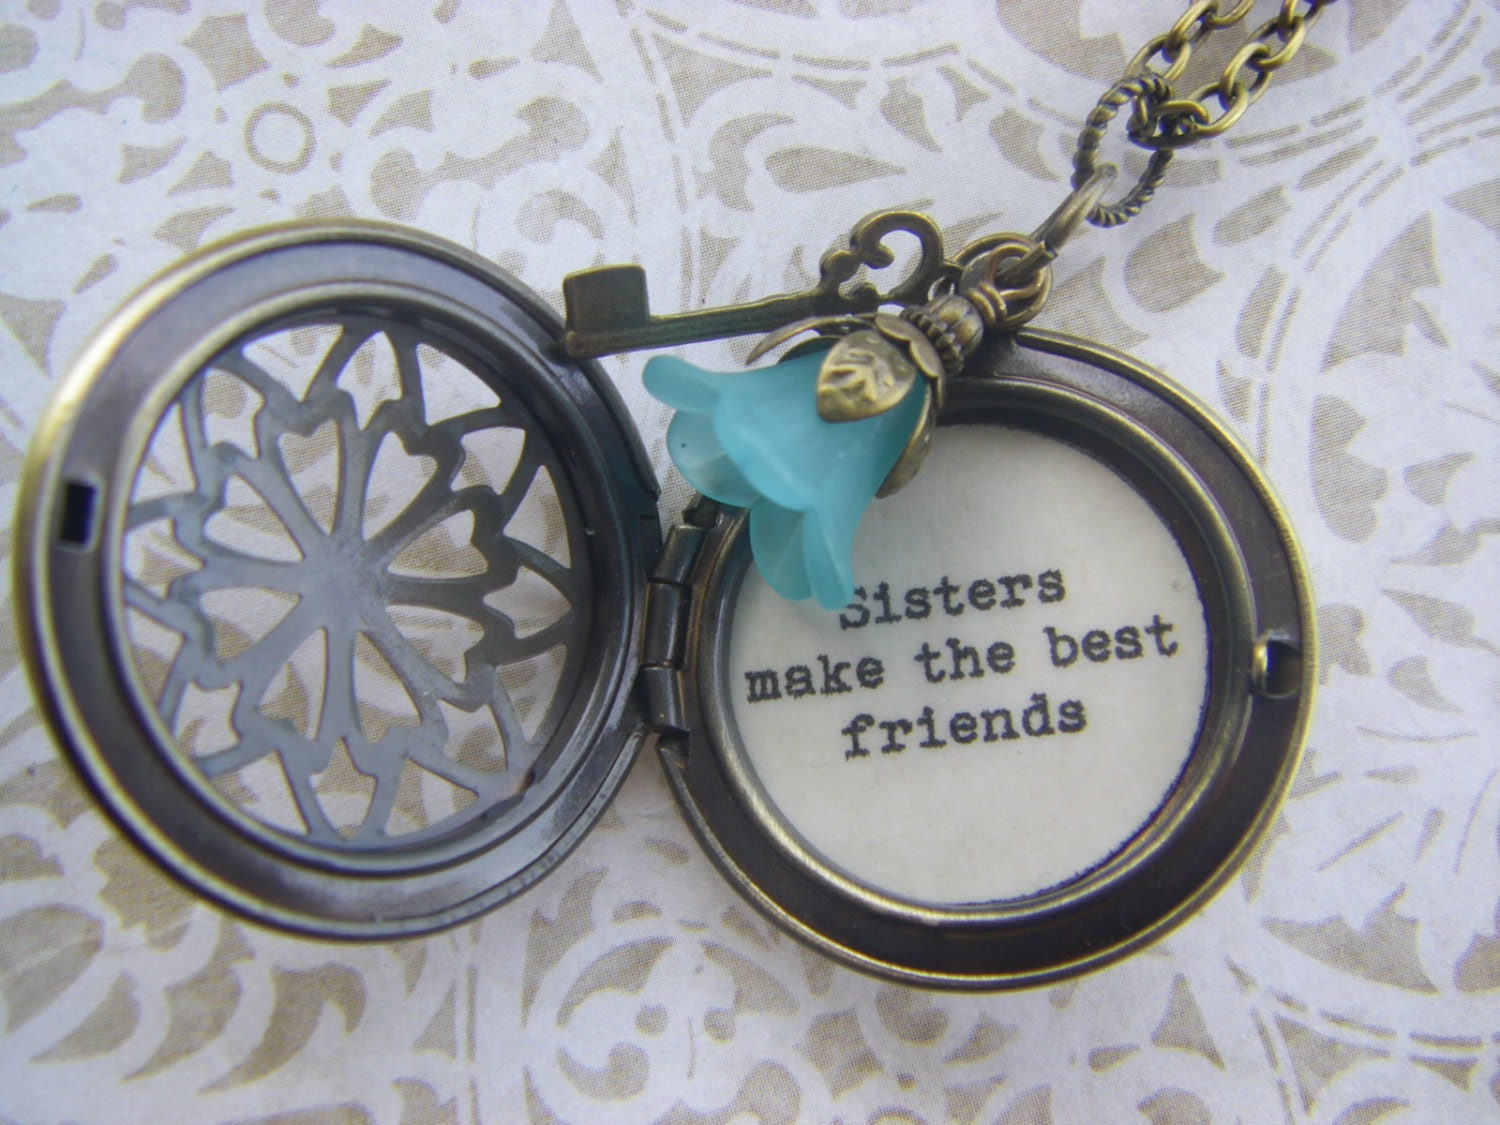 locket by necklace friend product lockets sister original best kimberley kimberleyselwood selwood set and